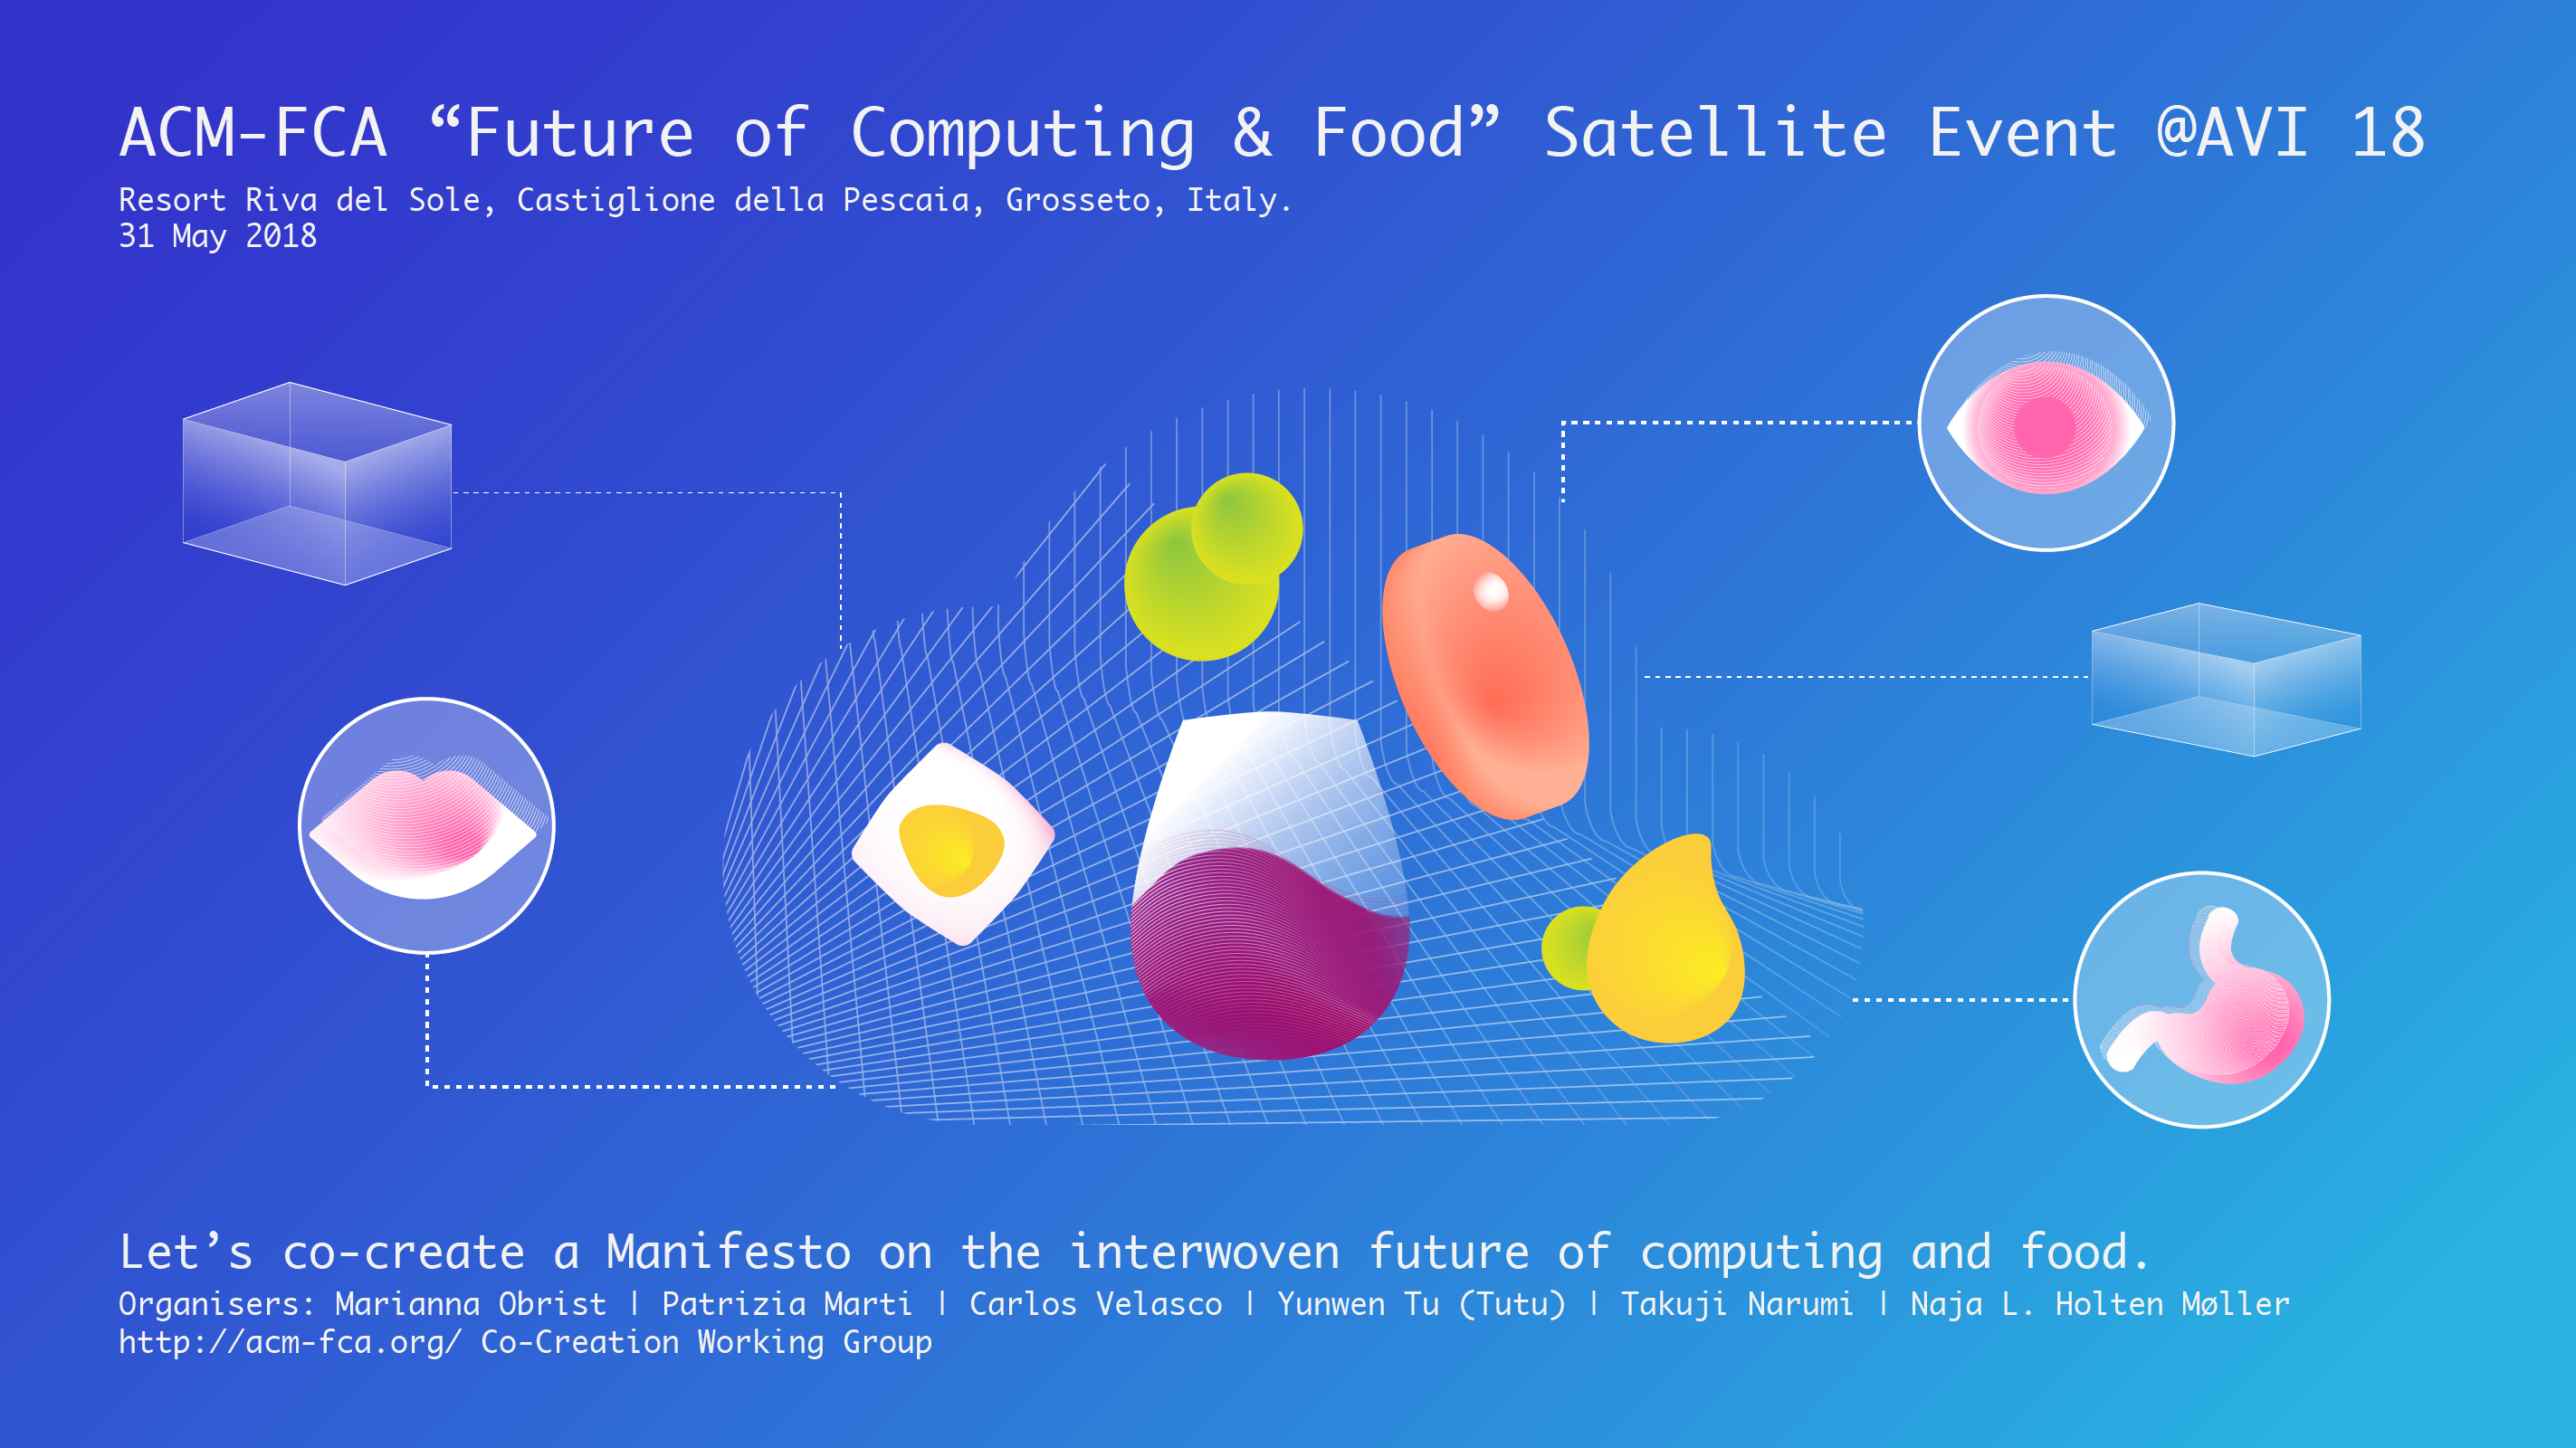 Futur of Computing and Food